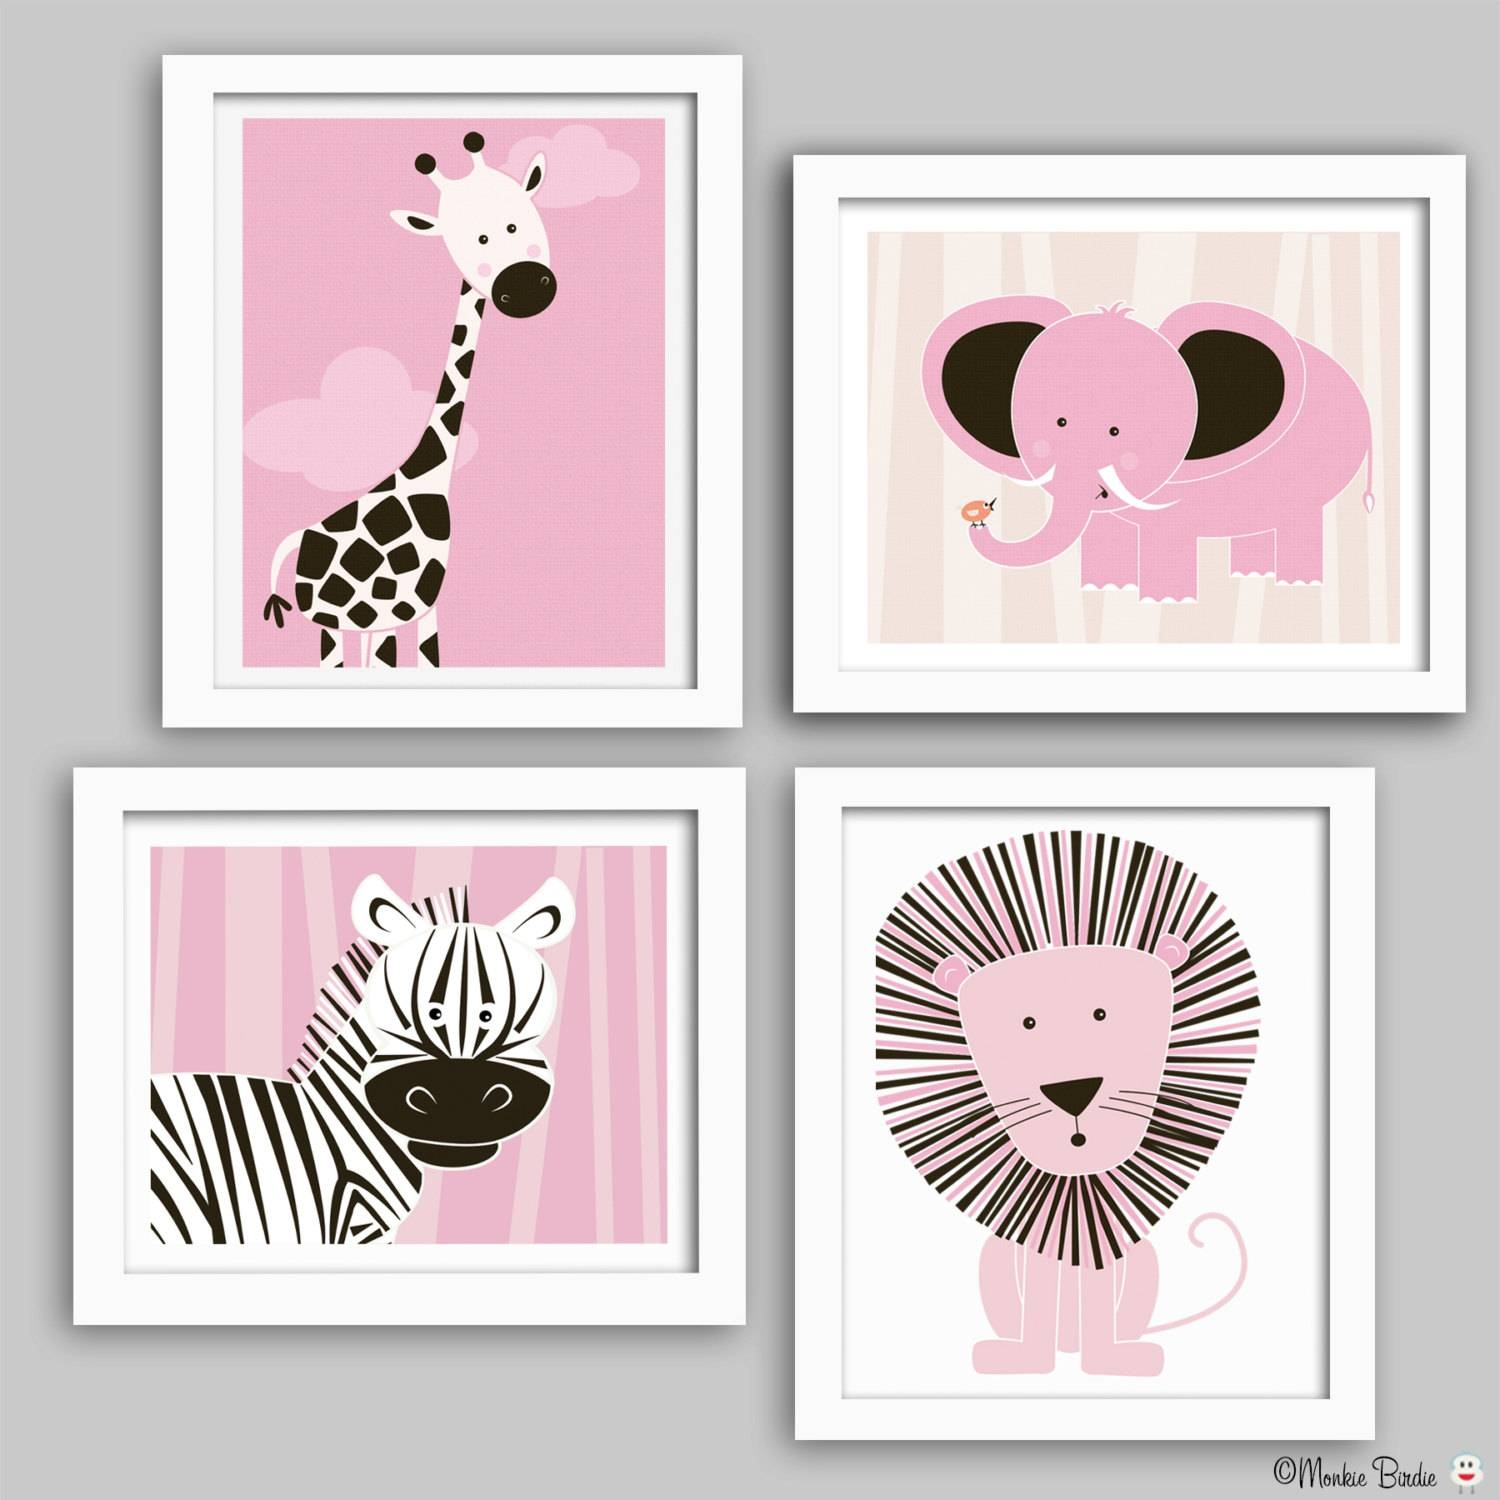 Charming Design Baby Nursery Wall Art Clever Ideas 25 Best Ideas For Newest Baby Wall Art (View 19 of 30)